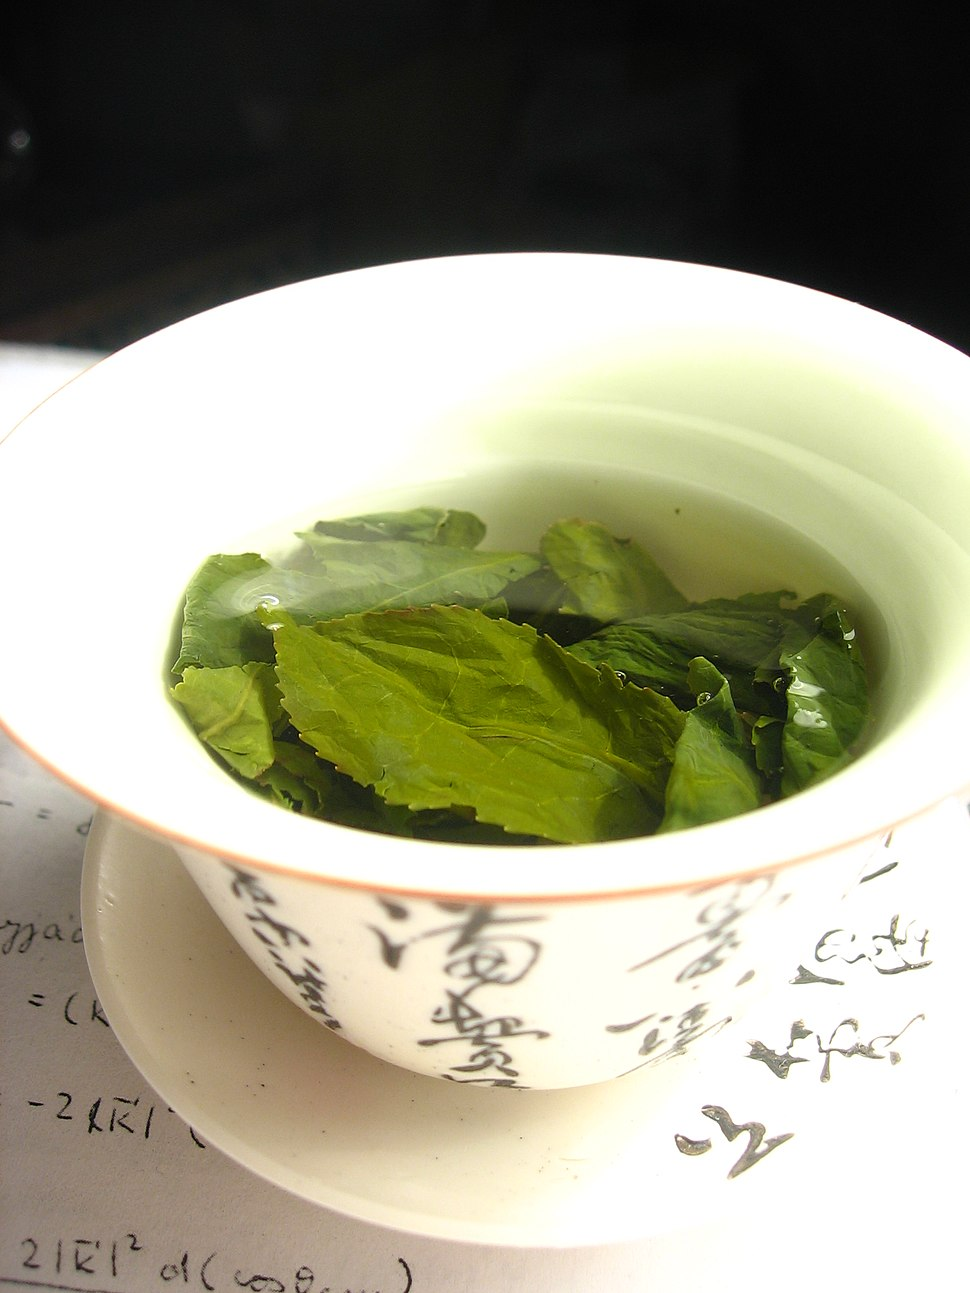 Tea leaves steeping in a zhong %C4%8Daj 05